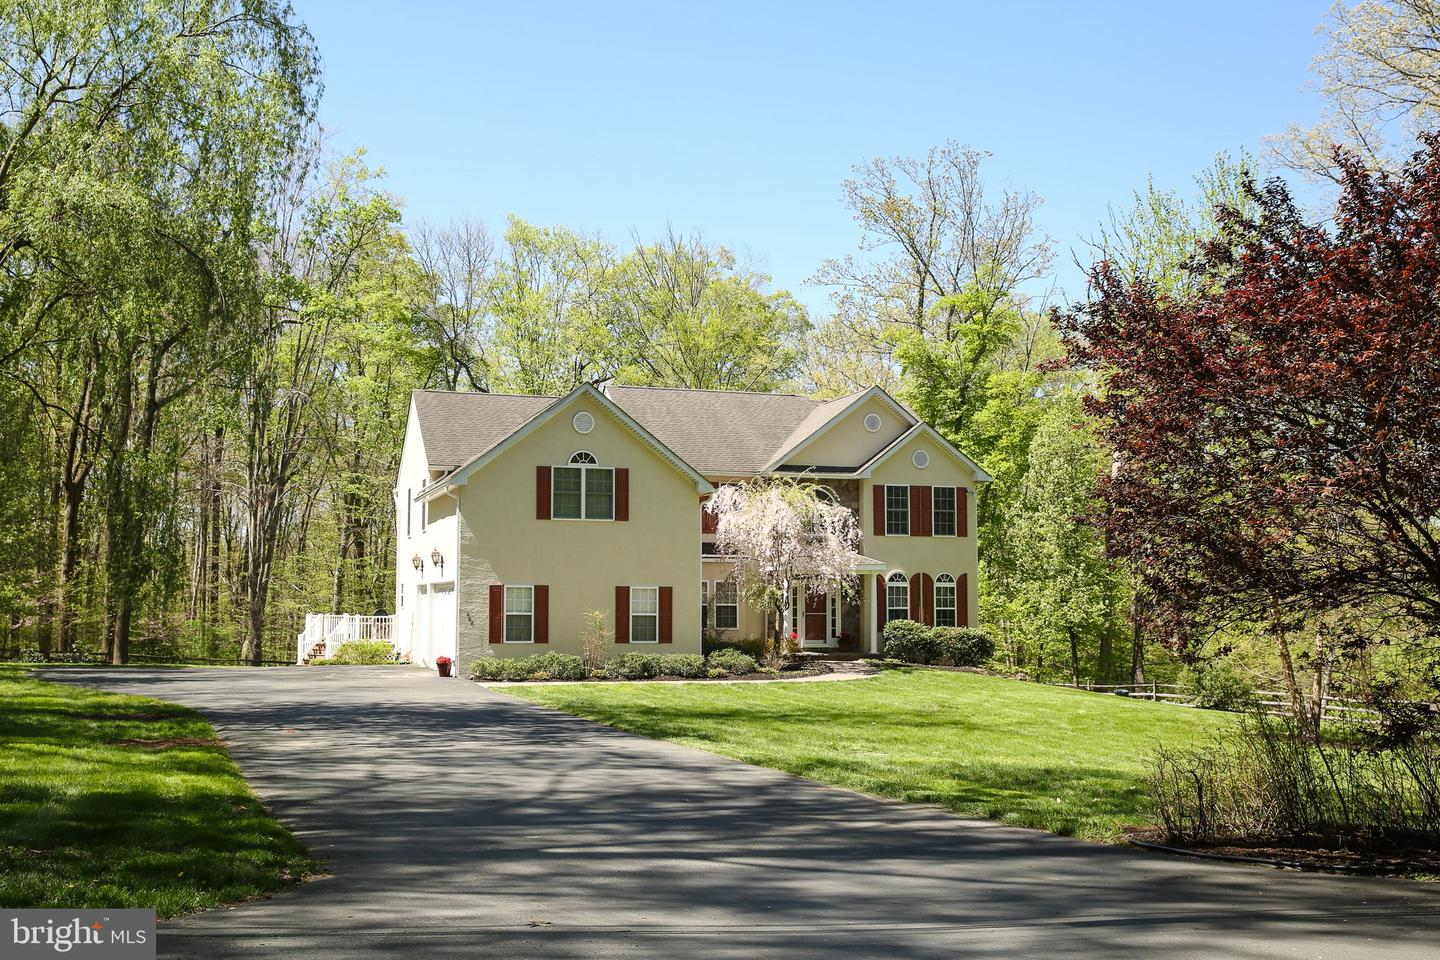 662 Reservoir Road West Chester, PA 19380